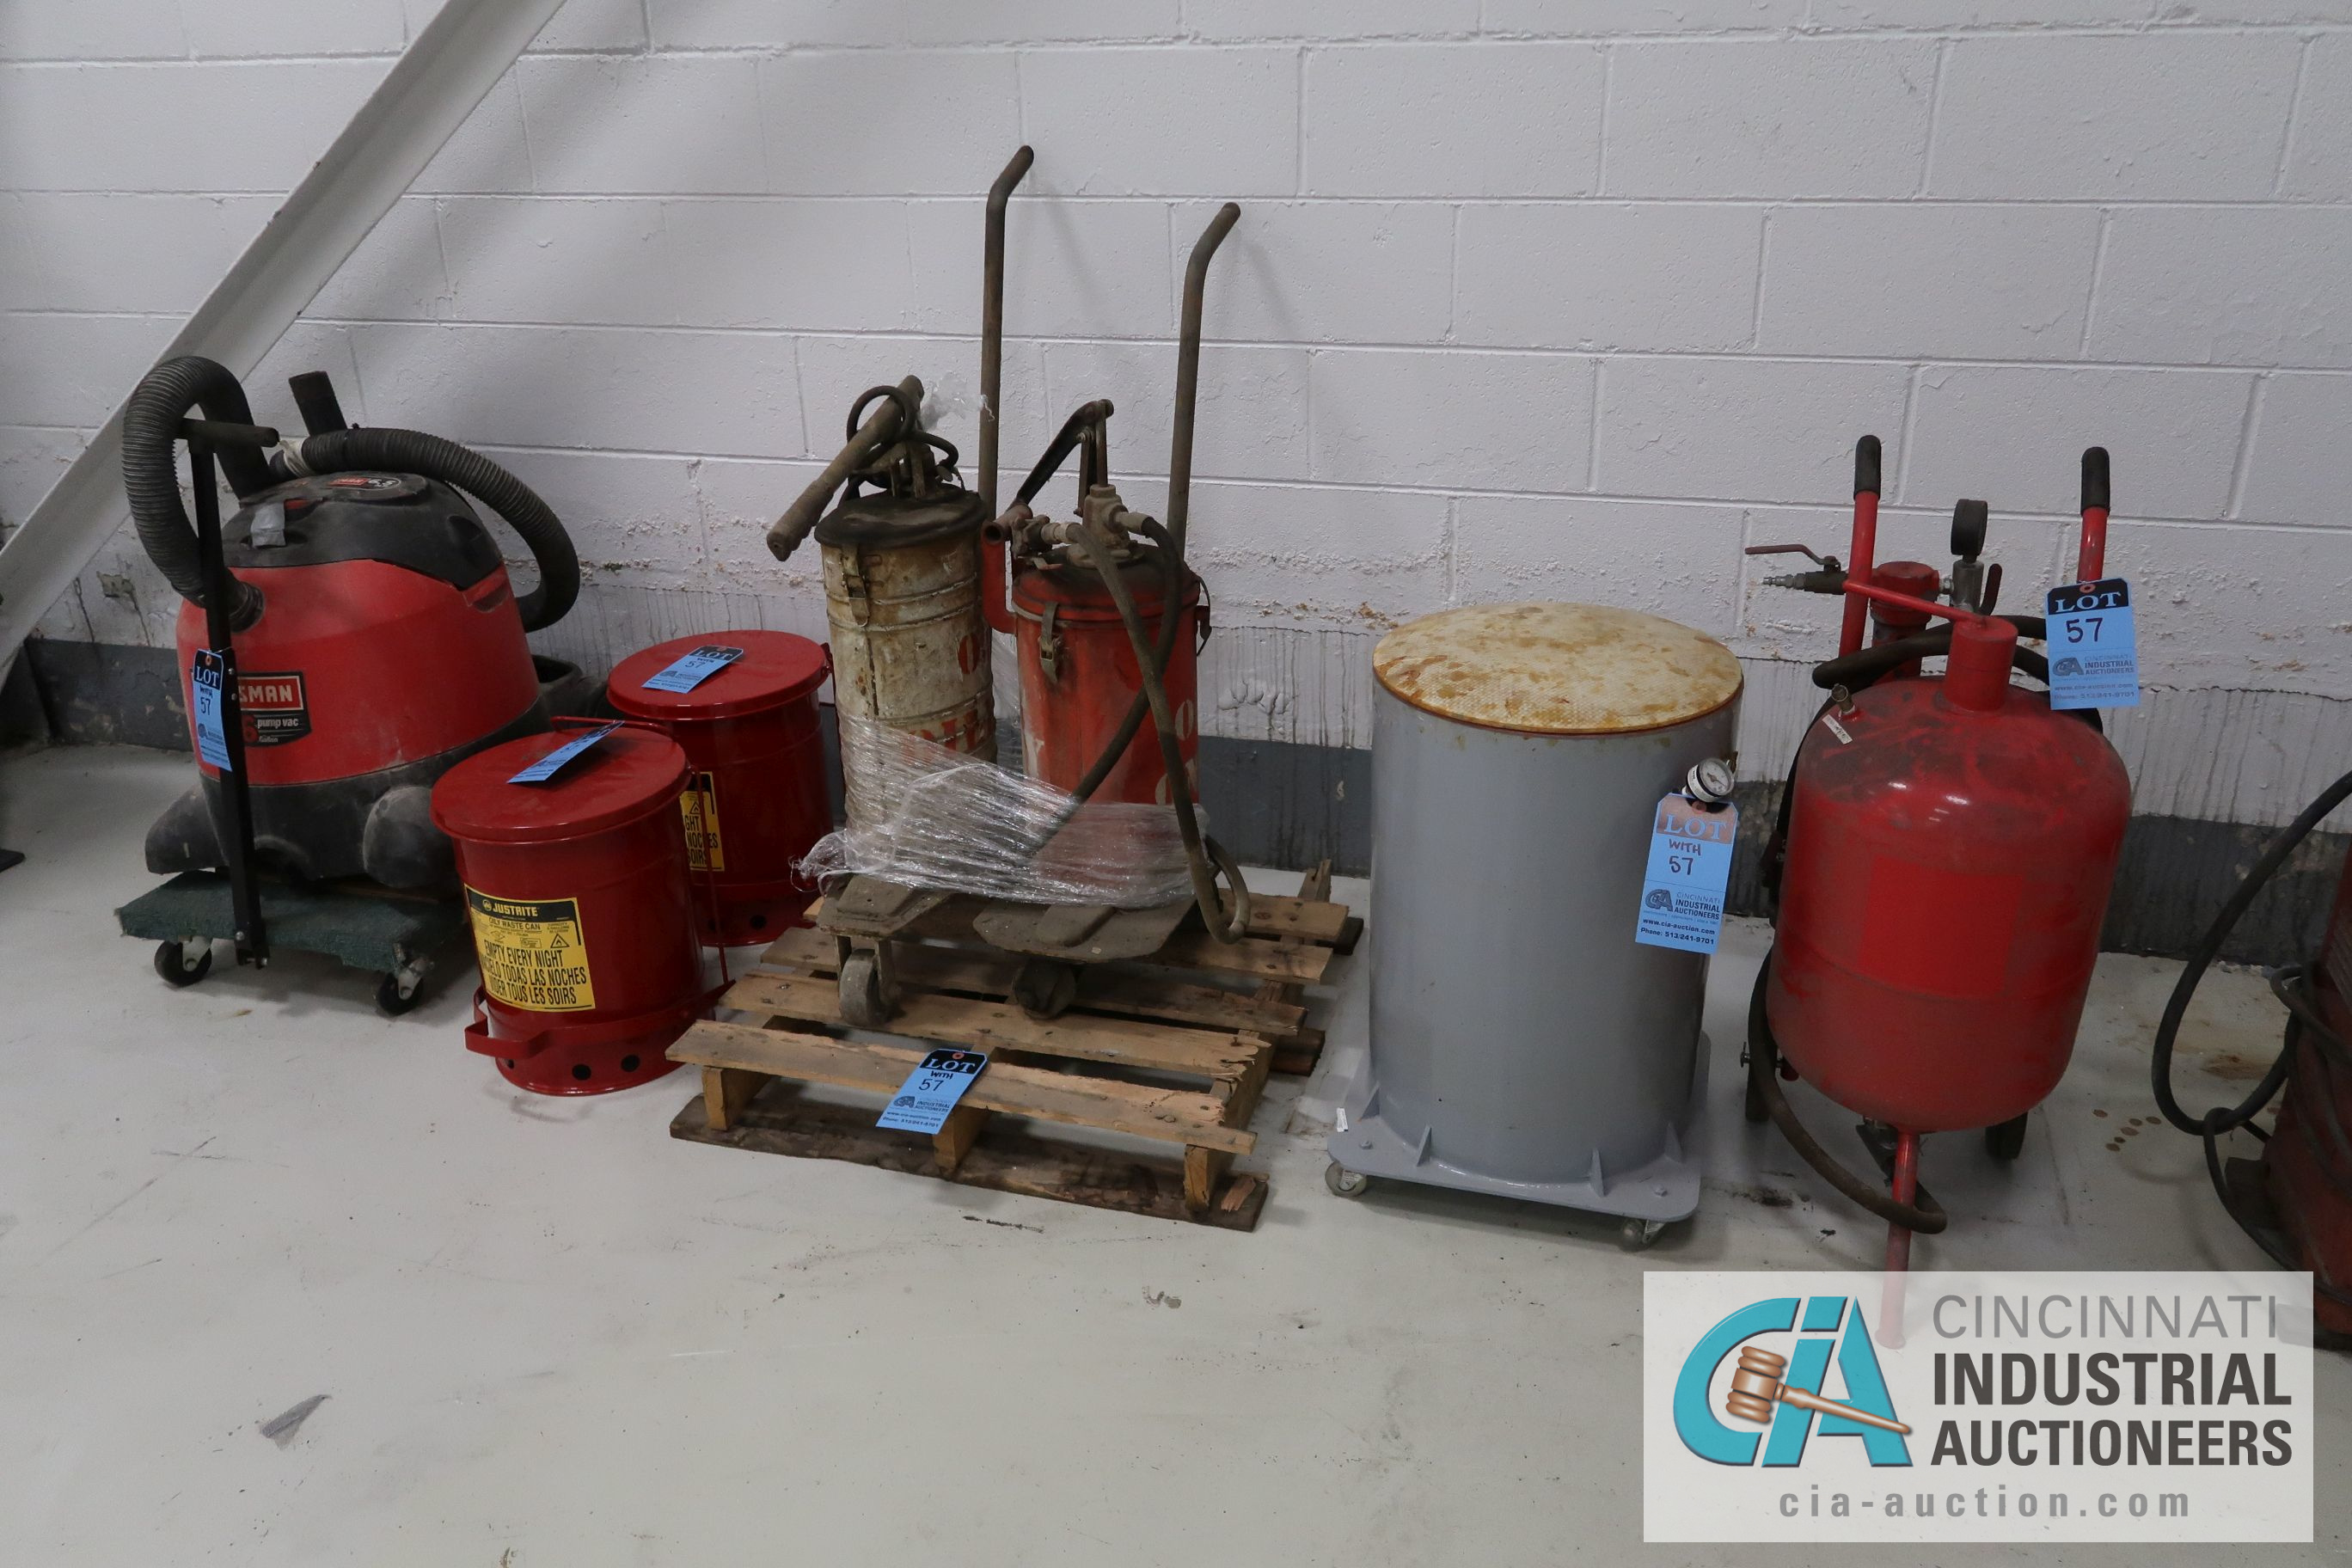 (LOT) MISCELLANEOUS - SAND BLAST POT, KETTLE, HYDRAULIC OIL PUMPS, JUSTRITE OILY WASTE CAN,